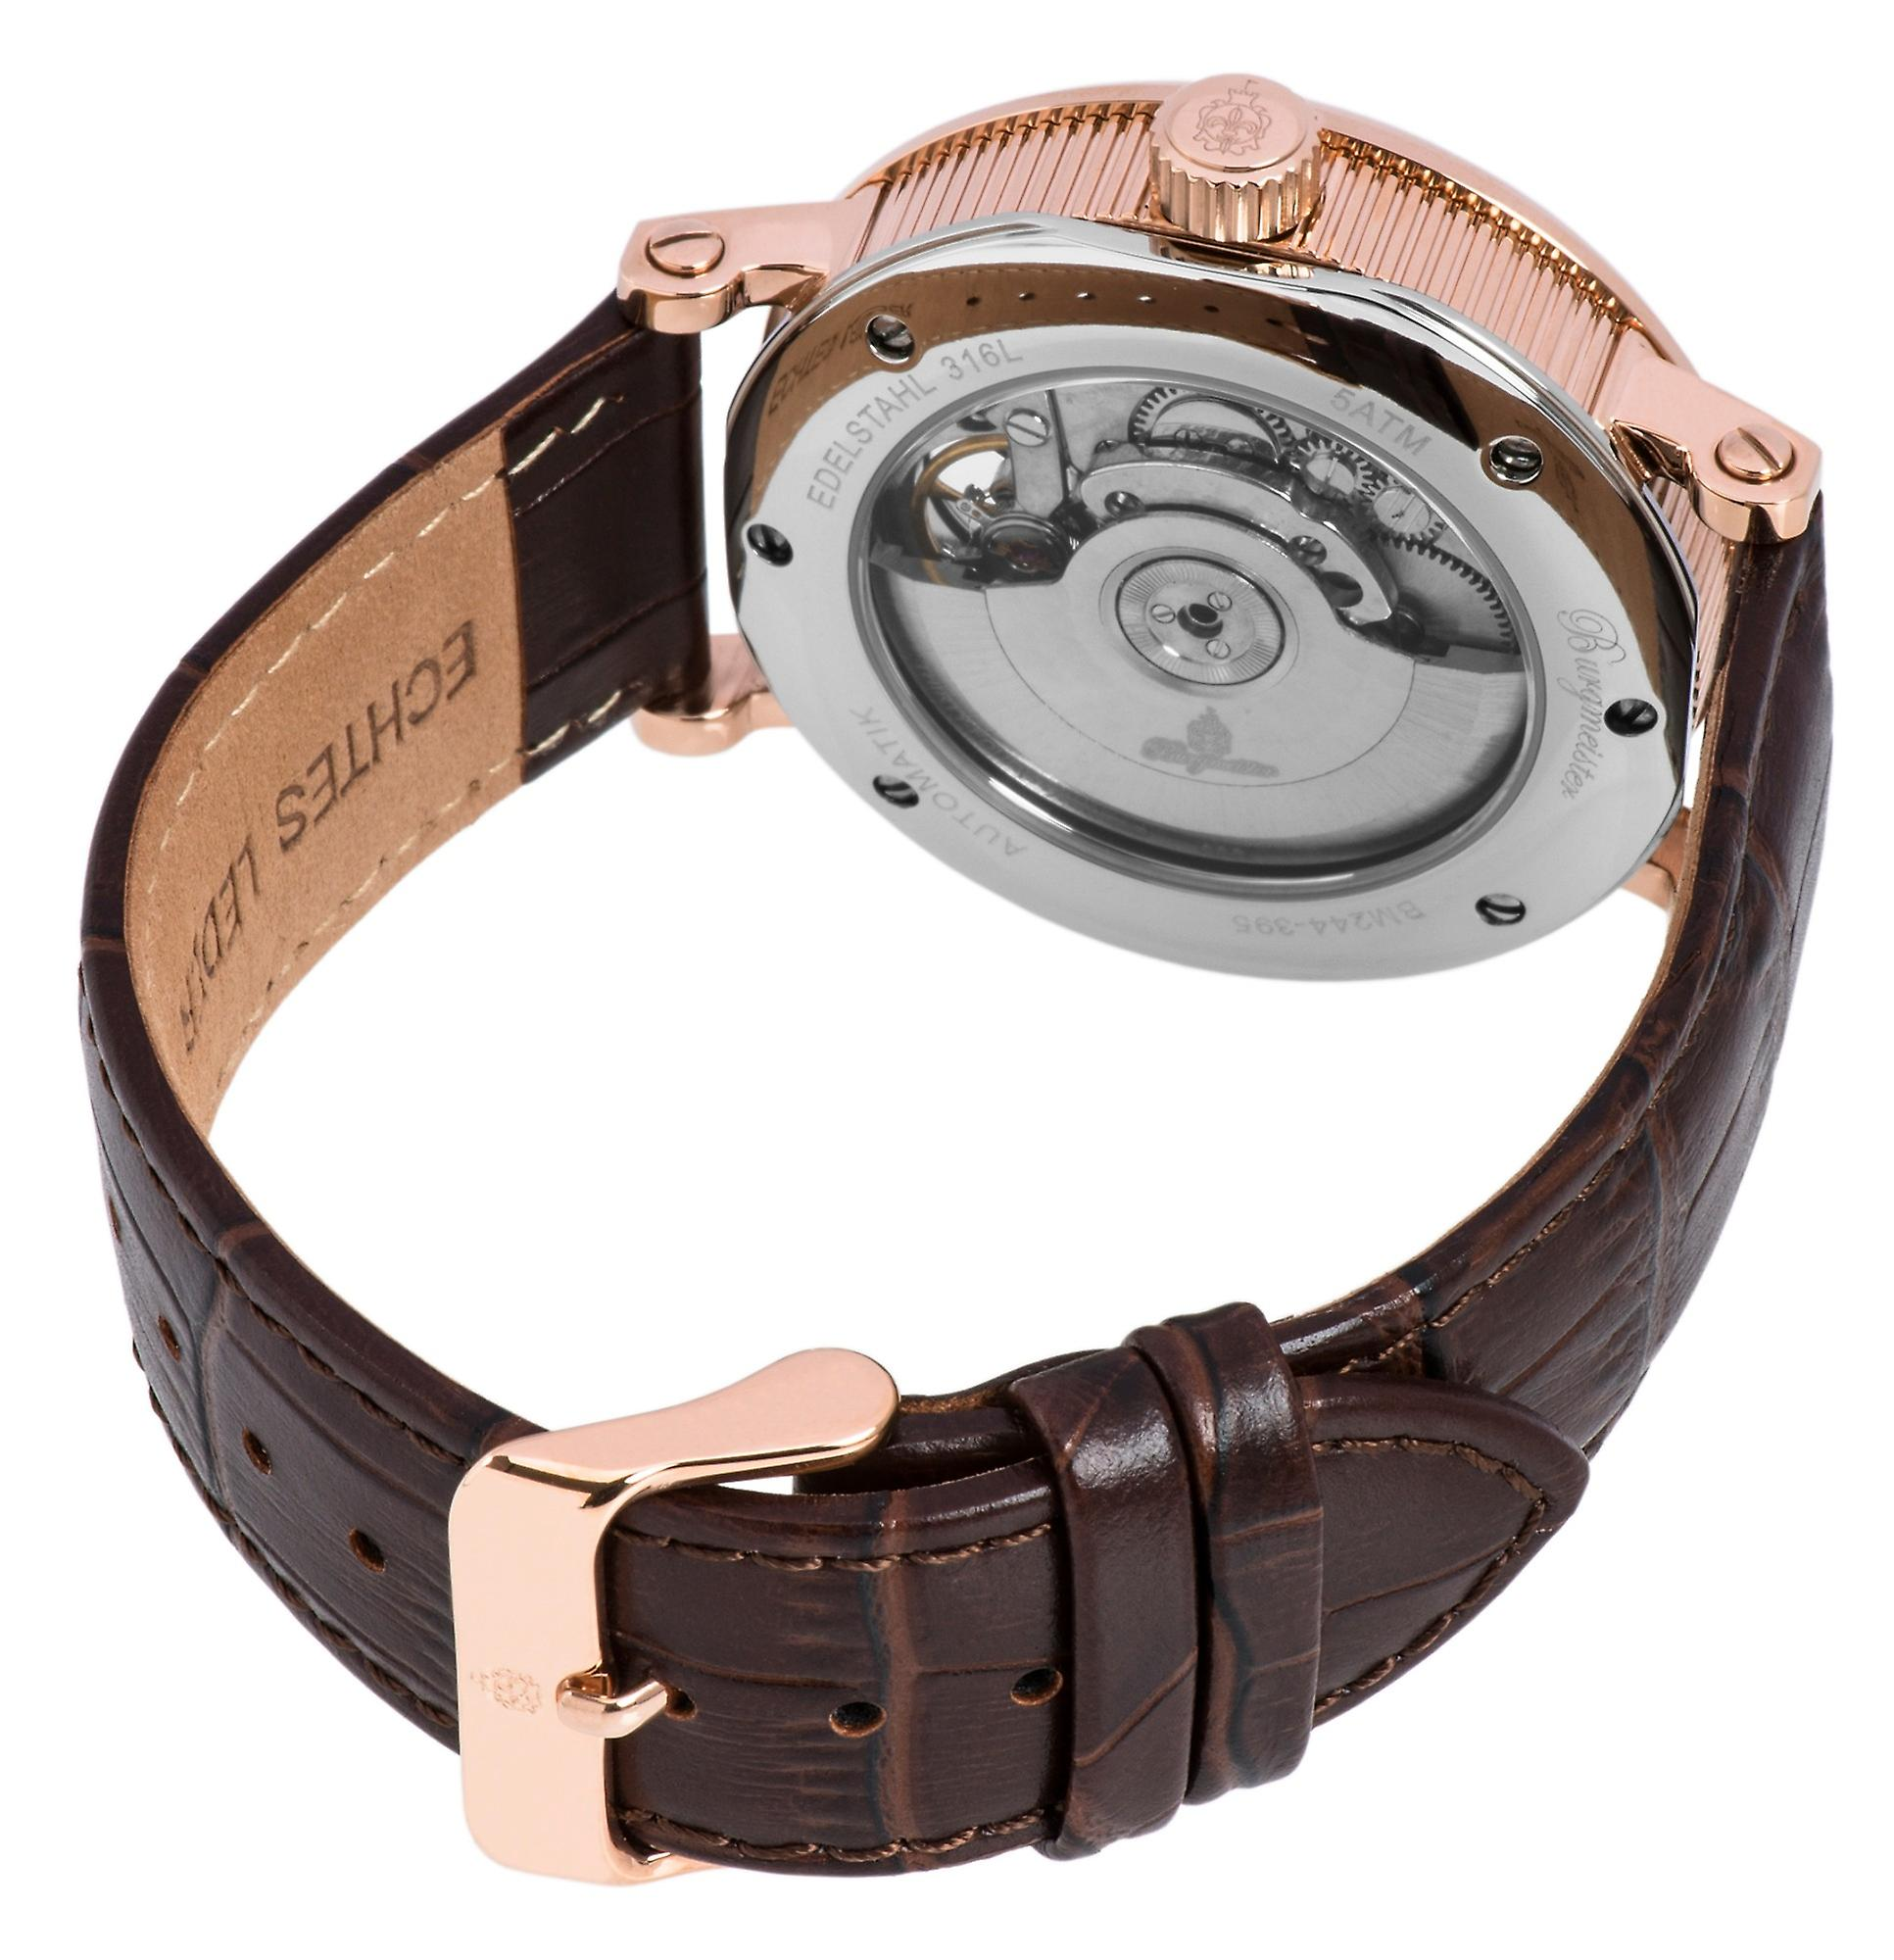 Burgmeister BM244-395 Thalwil, Gents automatic watch, Analogue display - Water resistant, Stylish leather strap, Classic men's watch